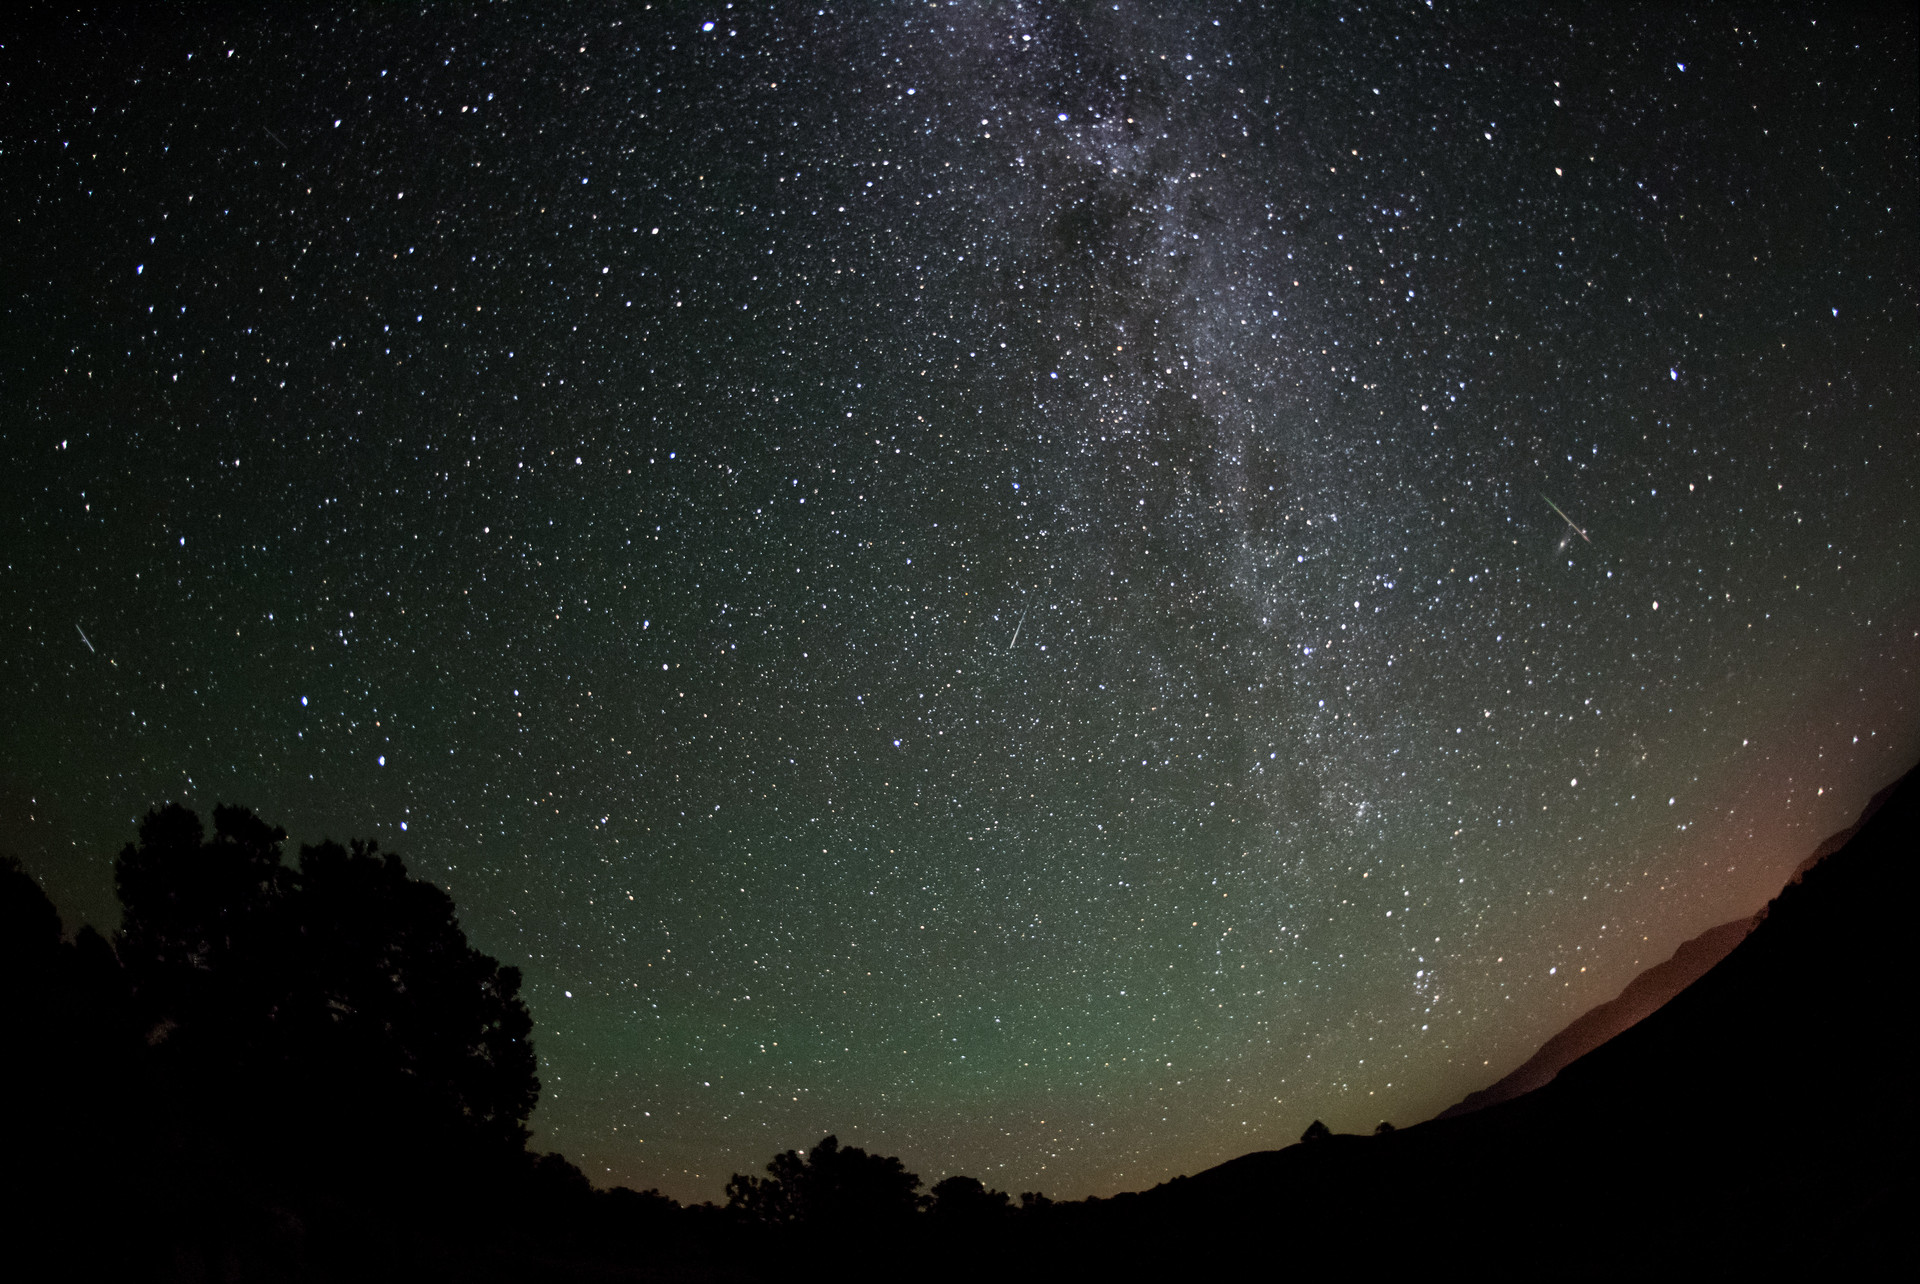 Shooting stars as seen in the Río Grande del Norte National Monument in June 2018.